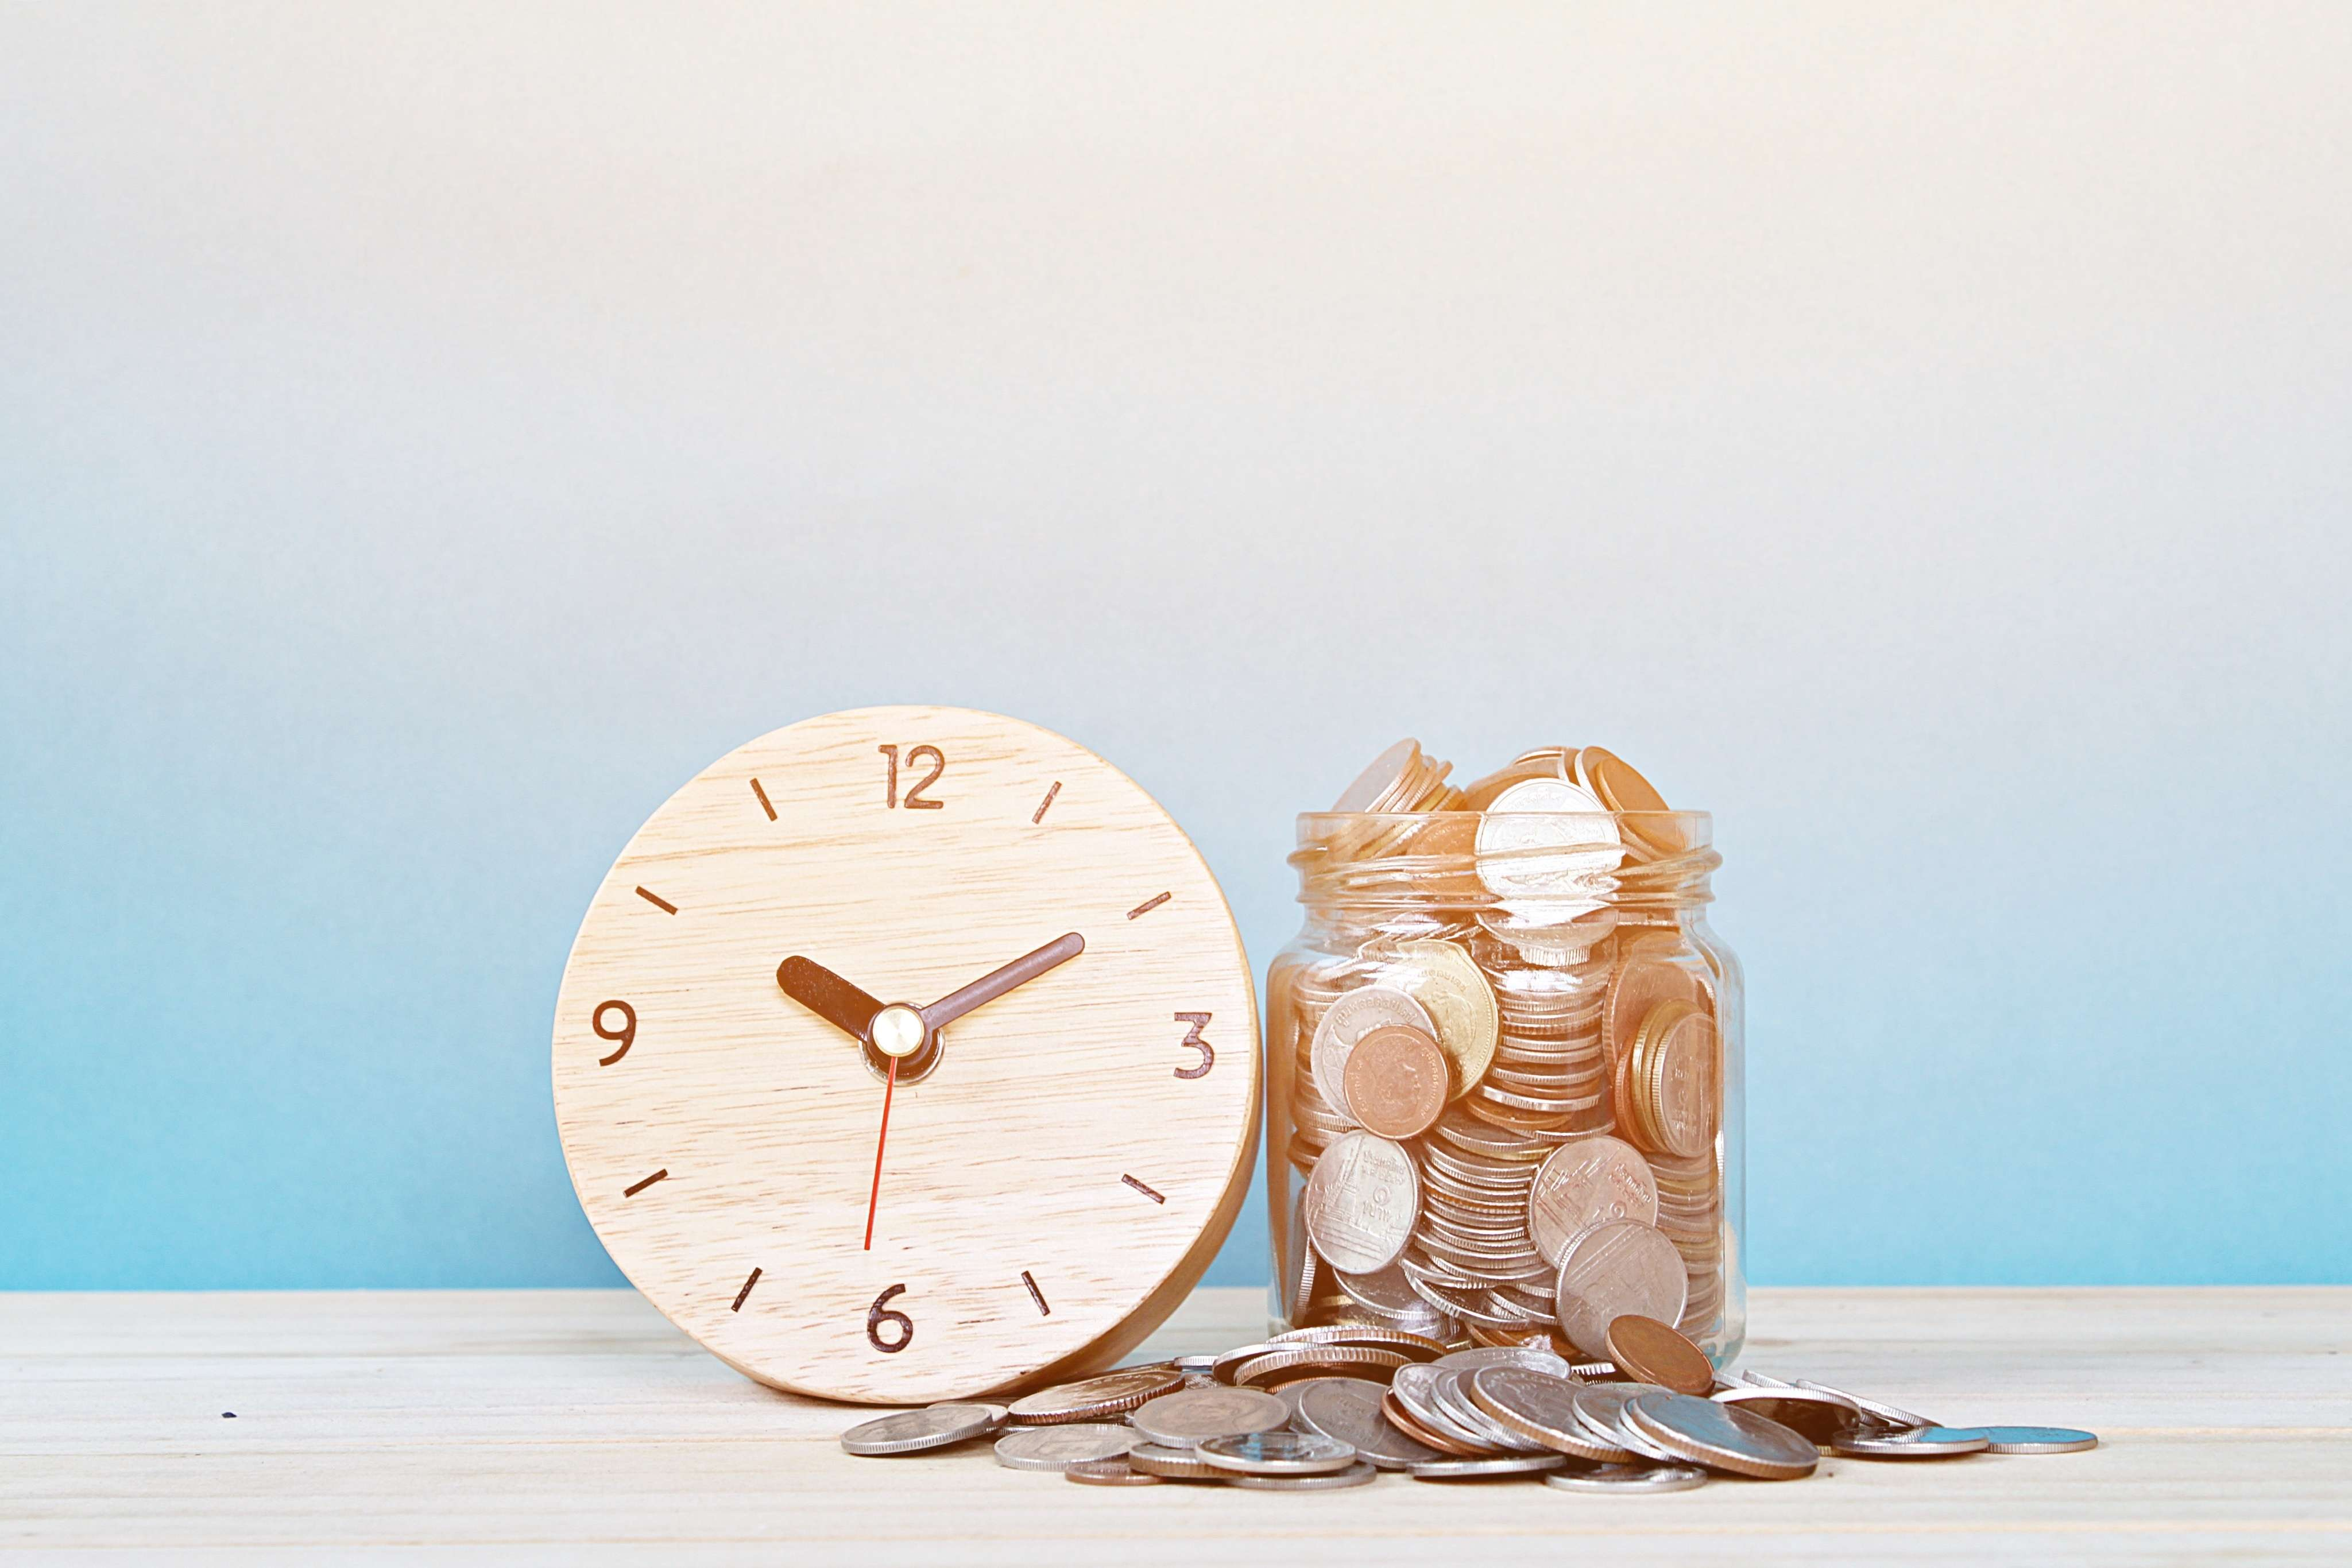 Persistent late payers to be fined under new Government proposals